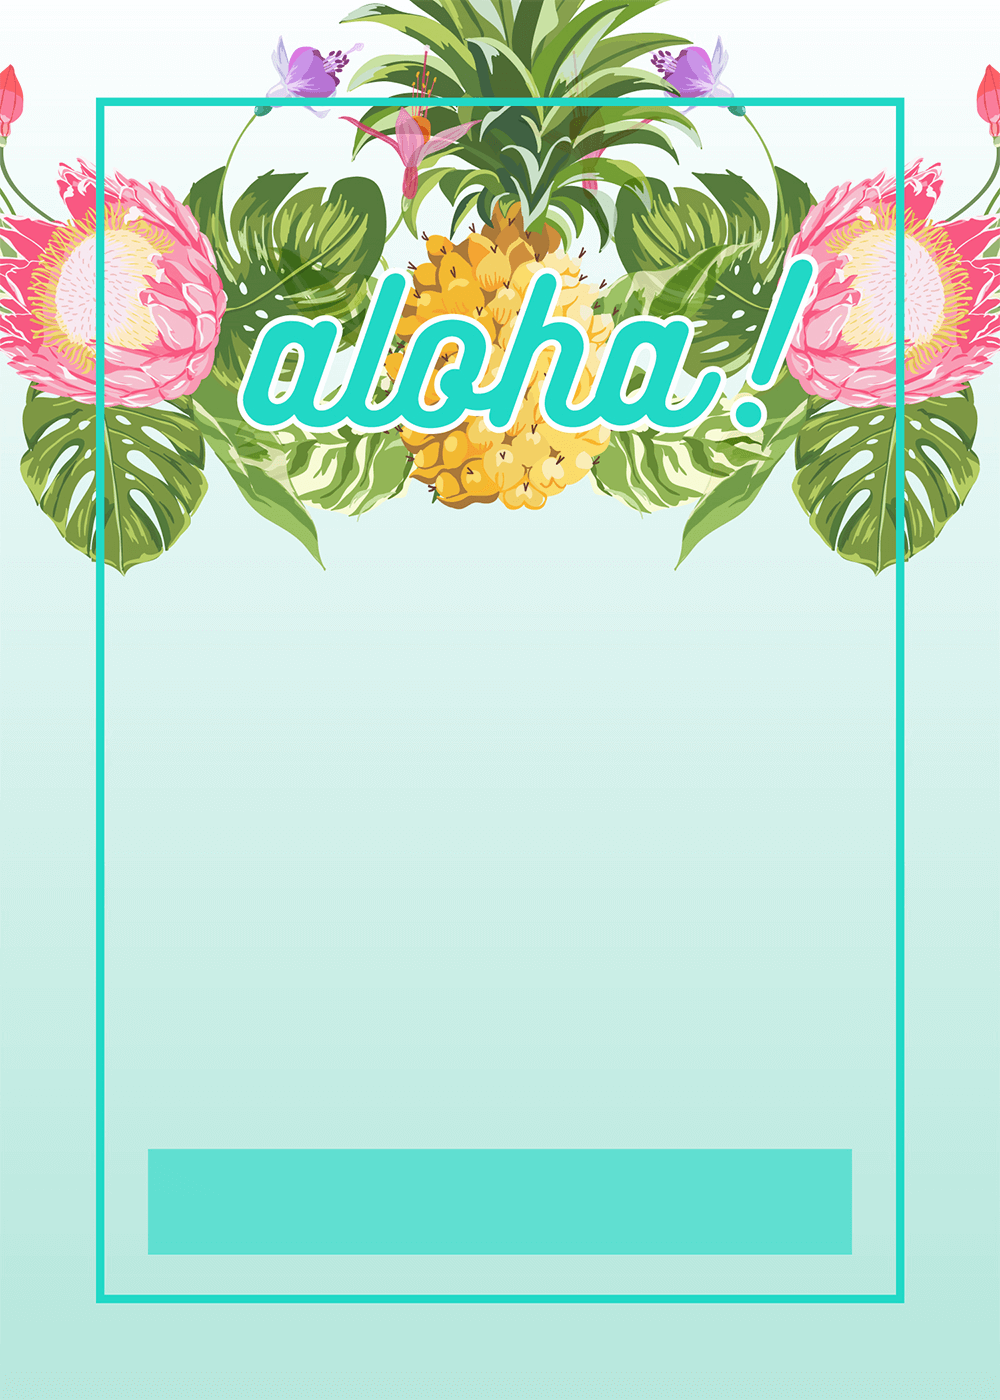 Pineapple Luau Perimeter   Free Printable Birthday Invitation Template |  Greetings Island  Invites Template